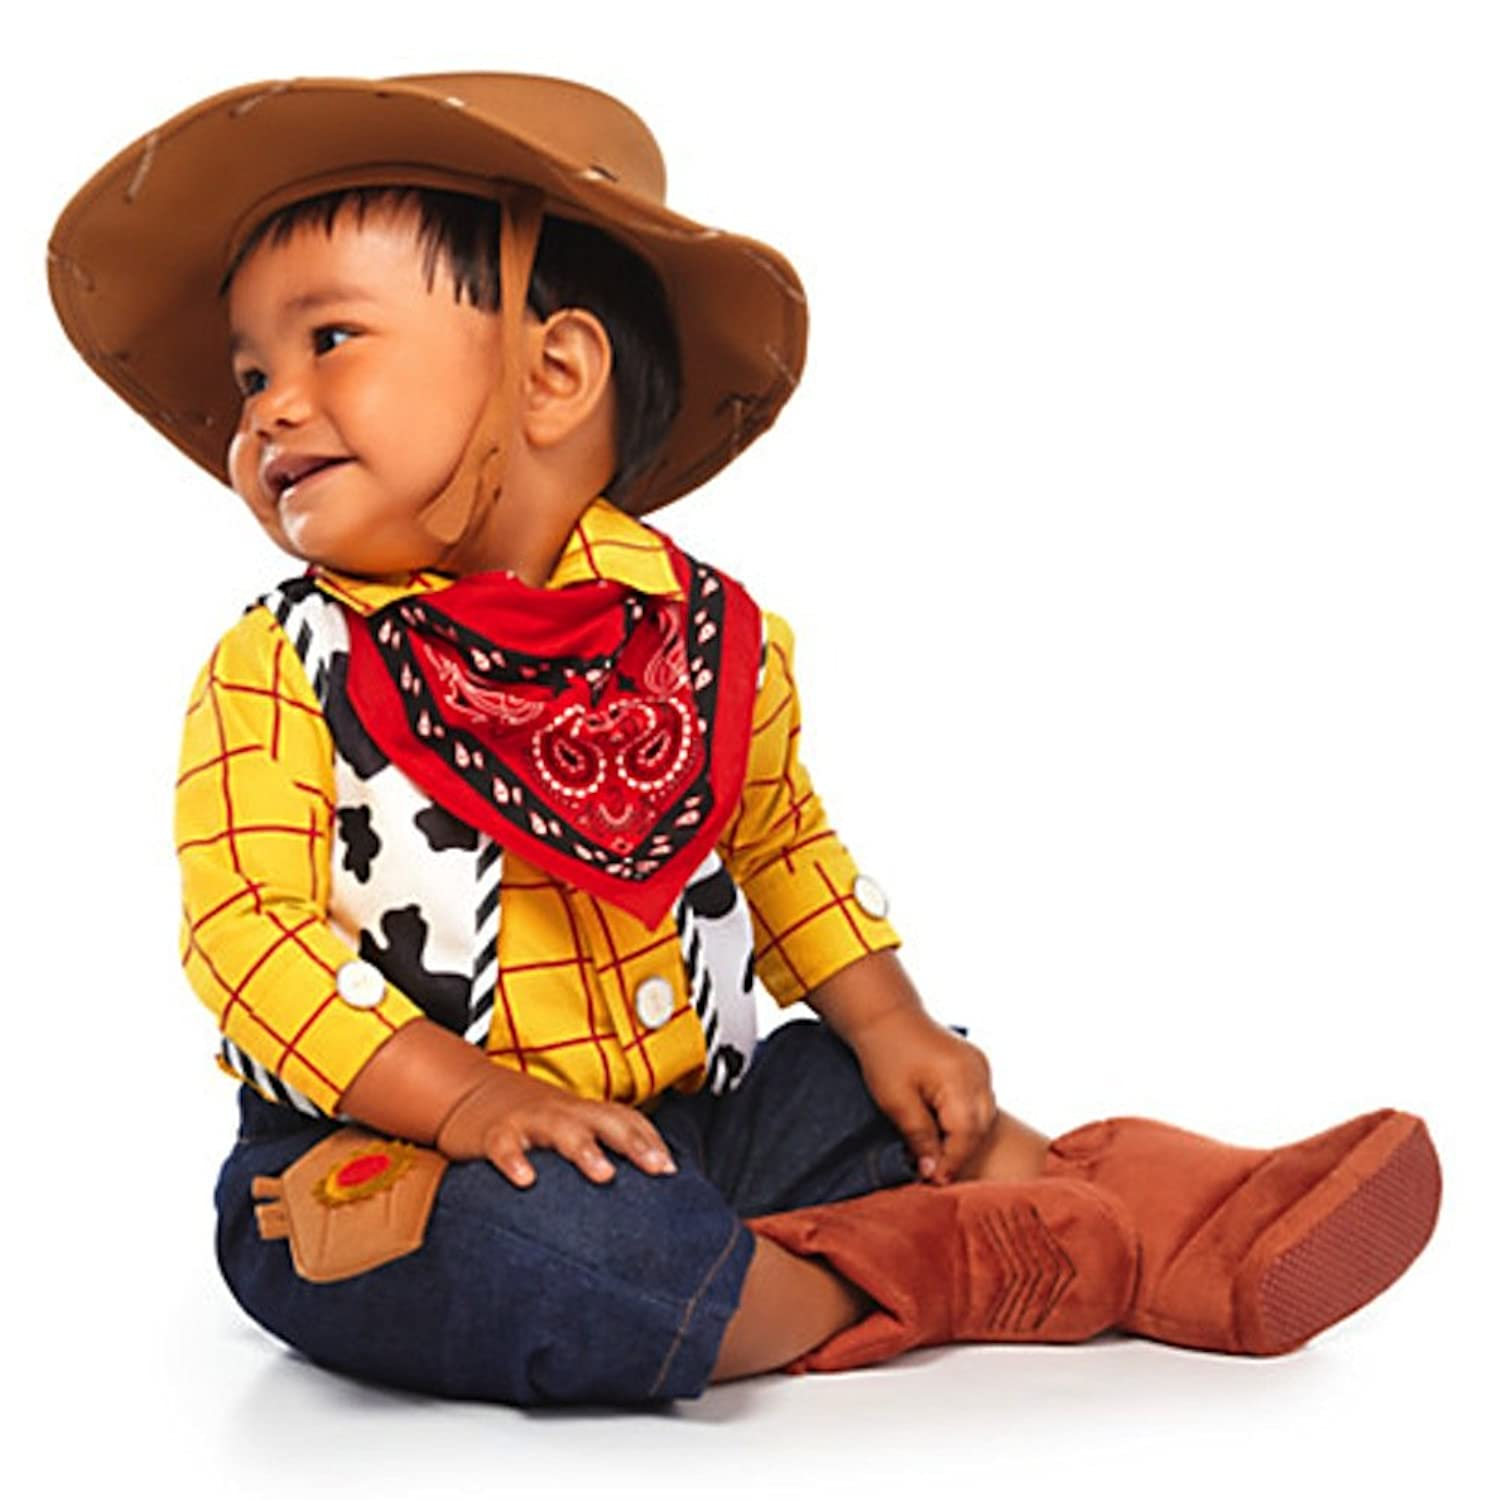 amazoncom disney deluxe toy story woody costume for baby boys toddlers months clothing